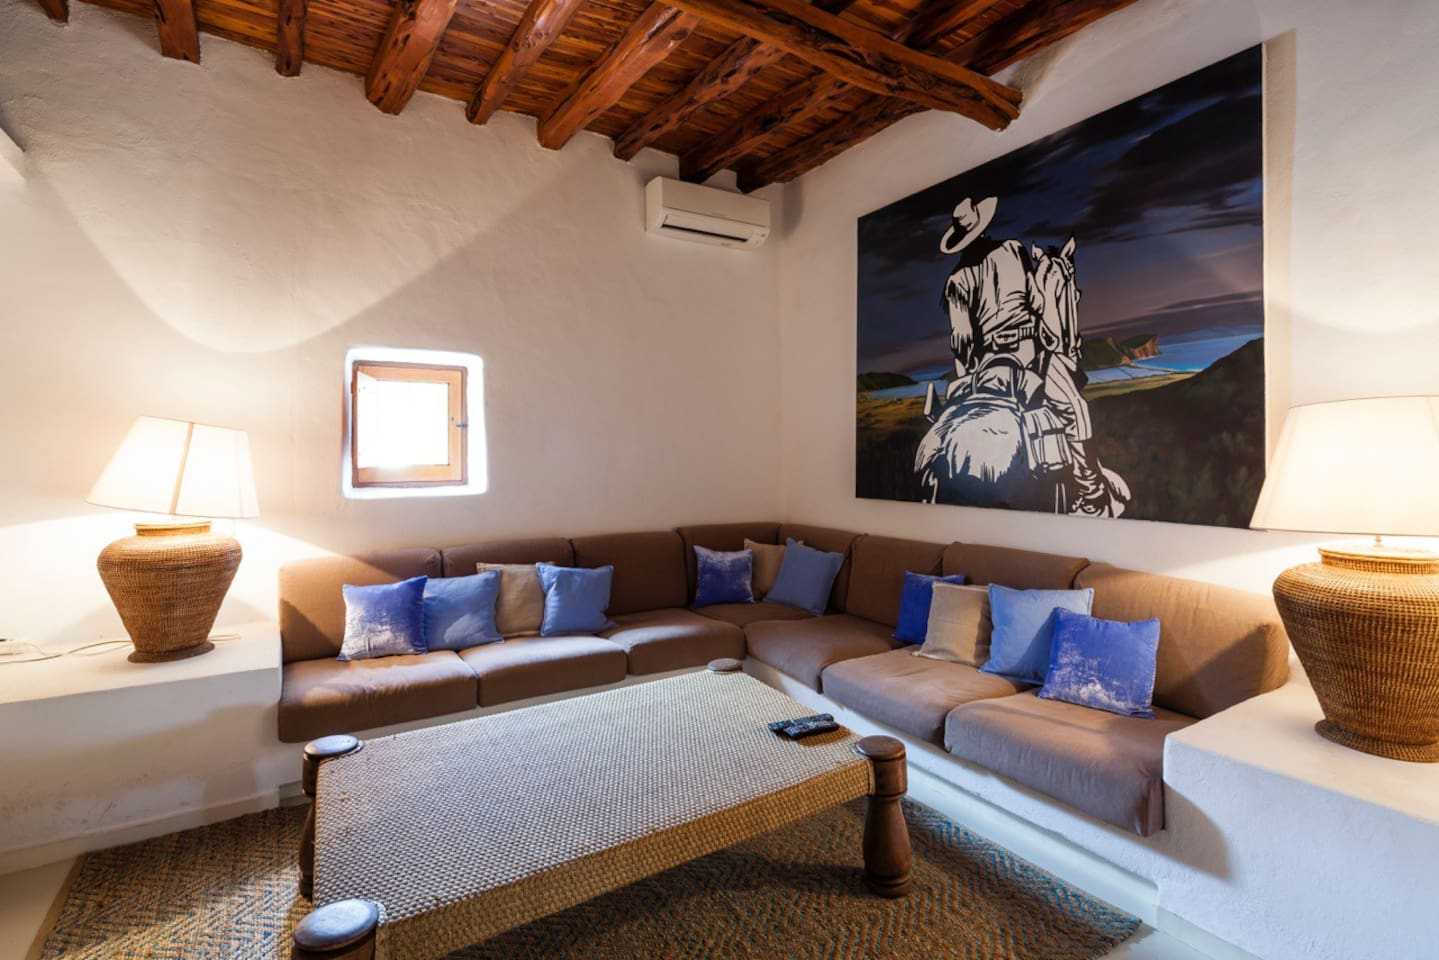 Apartment Sensational Villa with a huge infinity pool photo 23926489